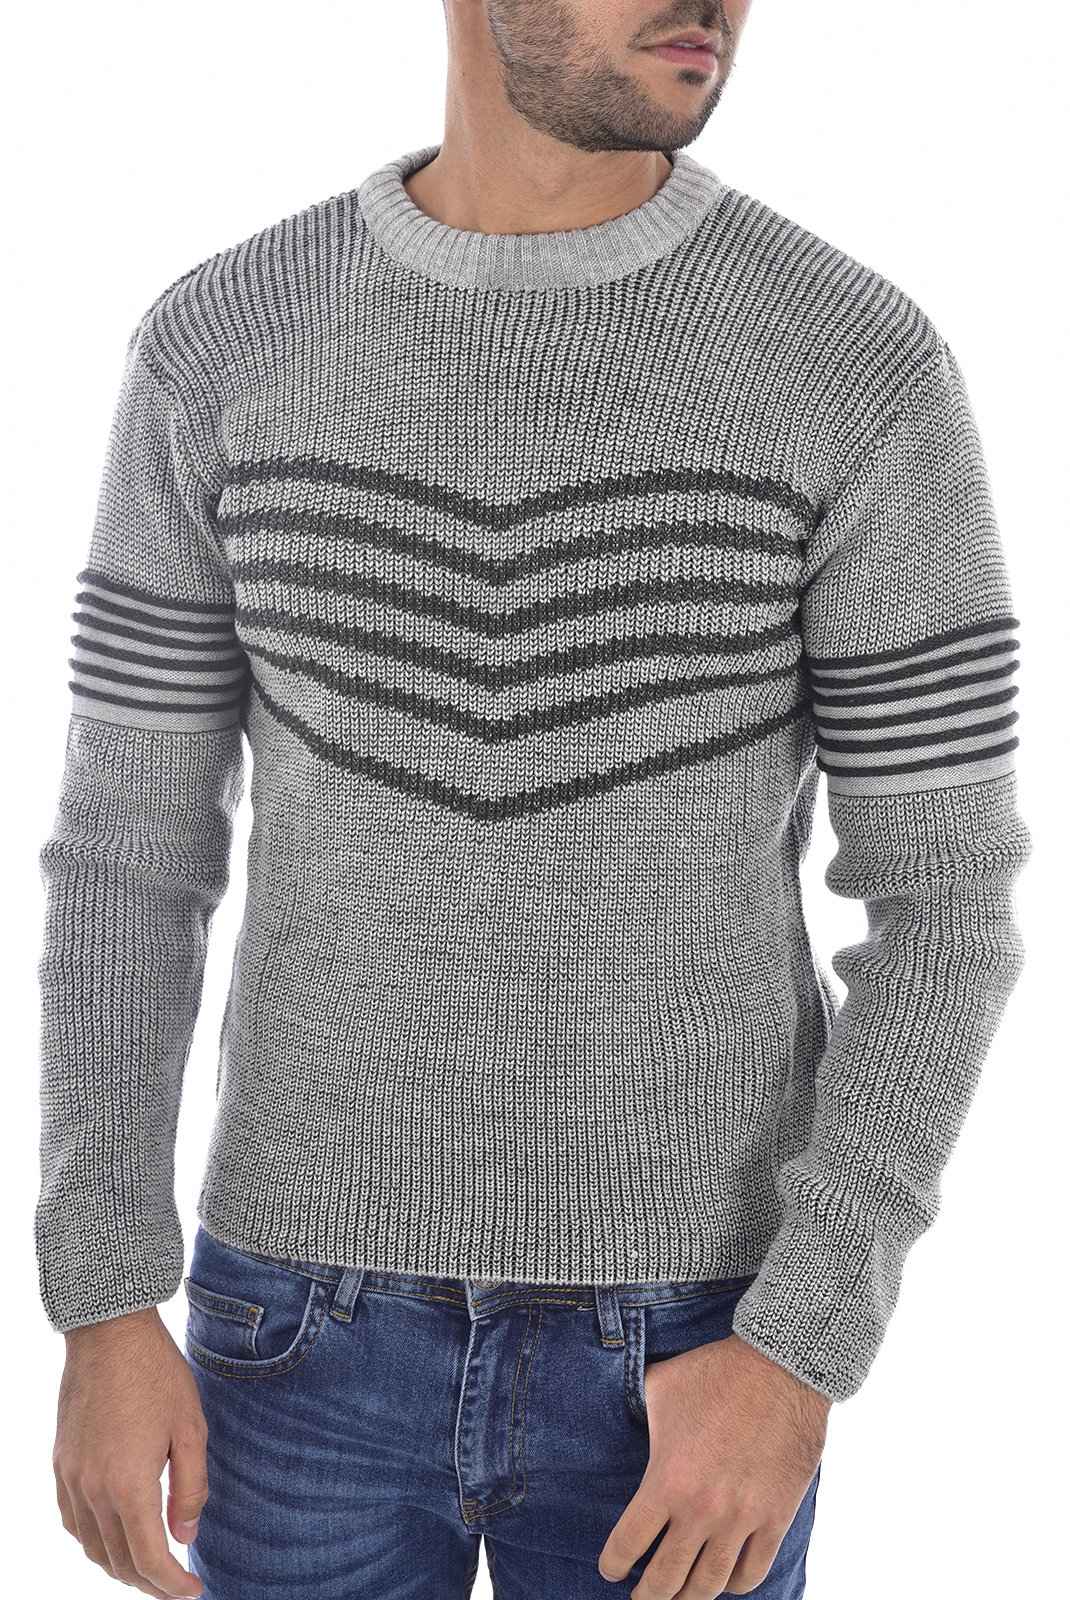 Homme  Goldenim paris 1259 GRIS CLAIR